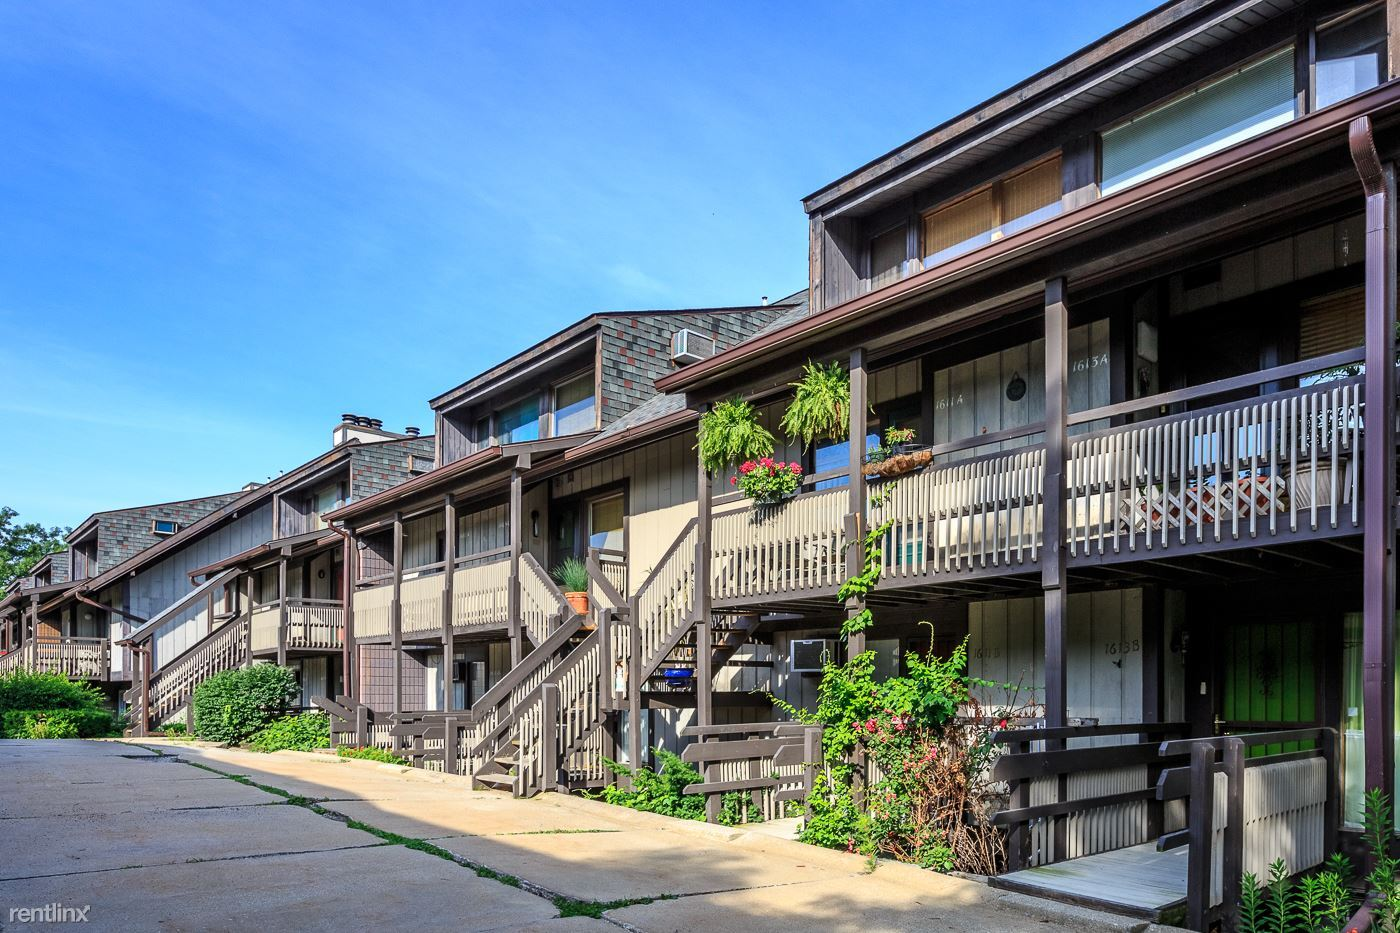 3 Bedroom Apartments Kent Ohio.Awesome Timber Top Apartments ...